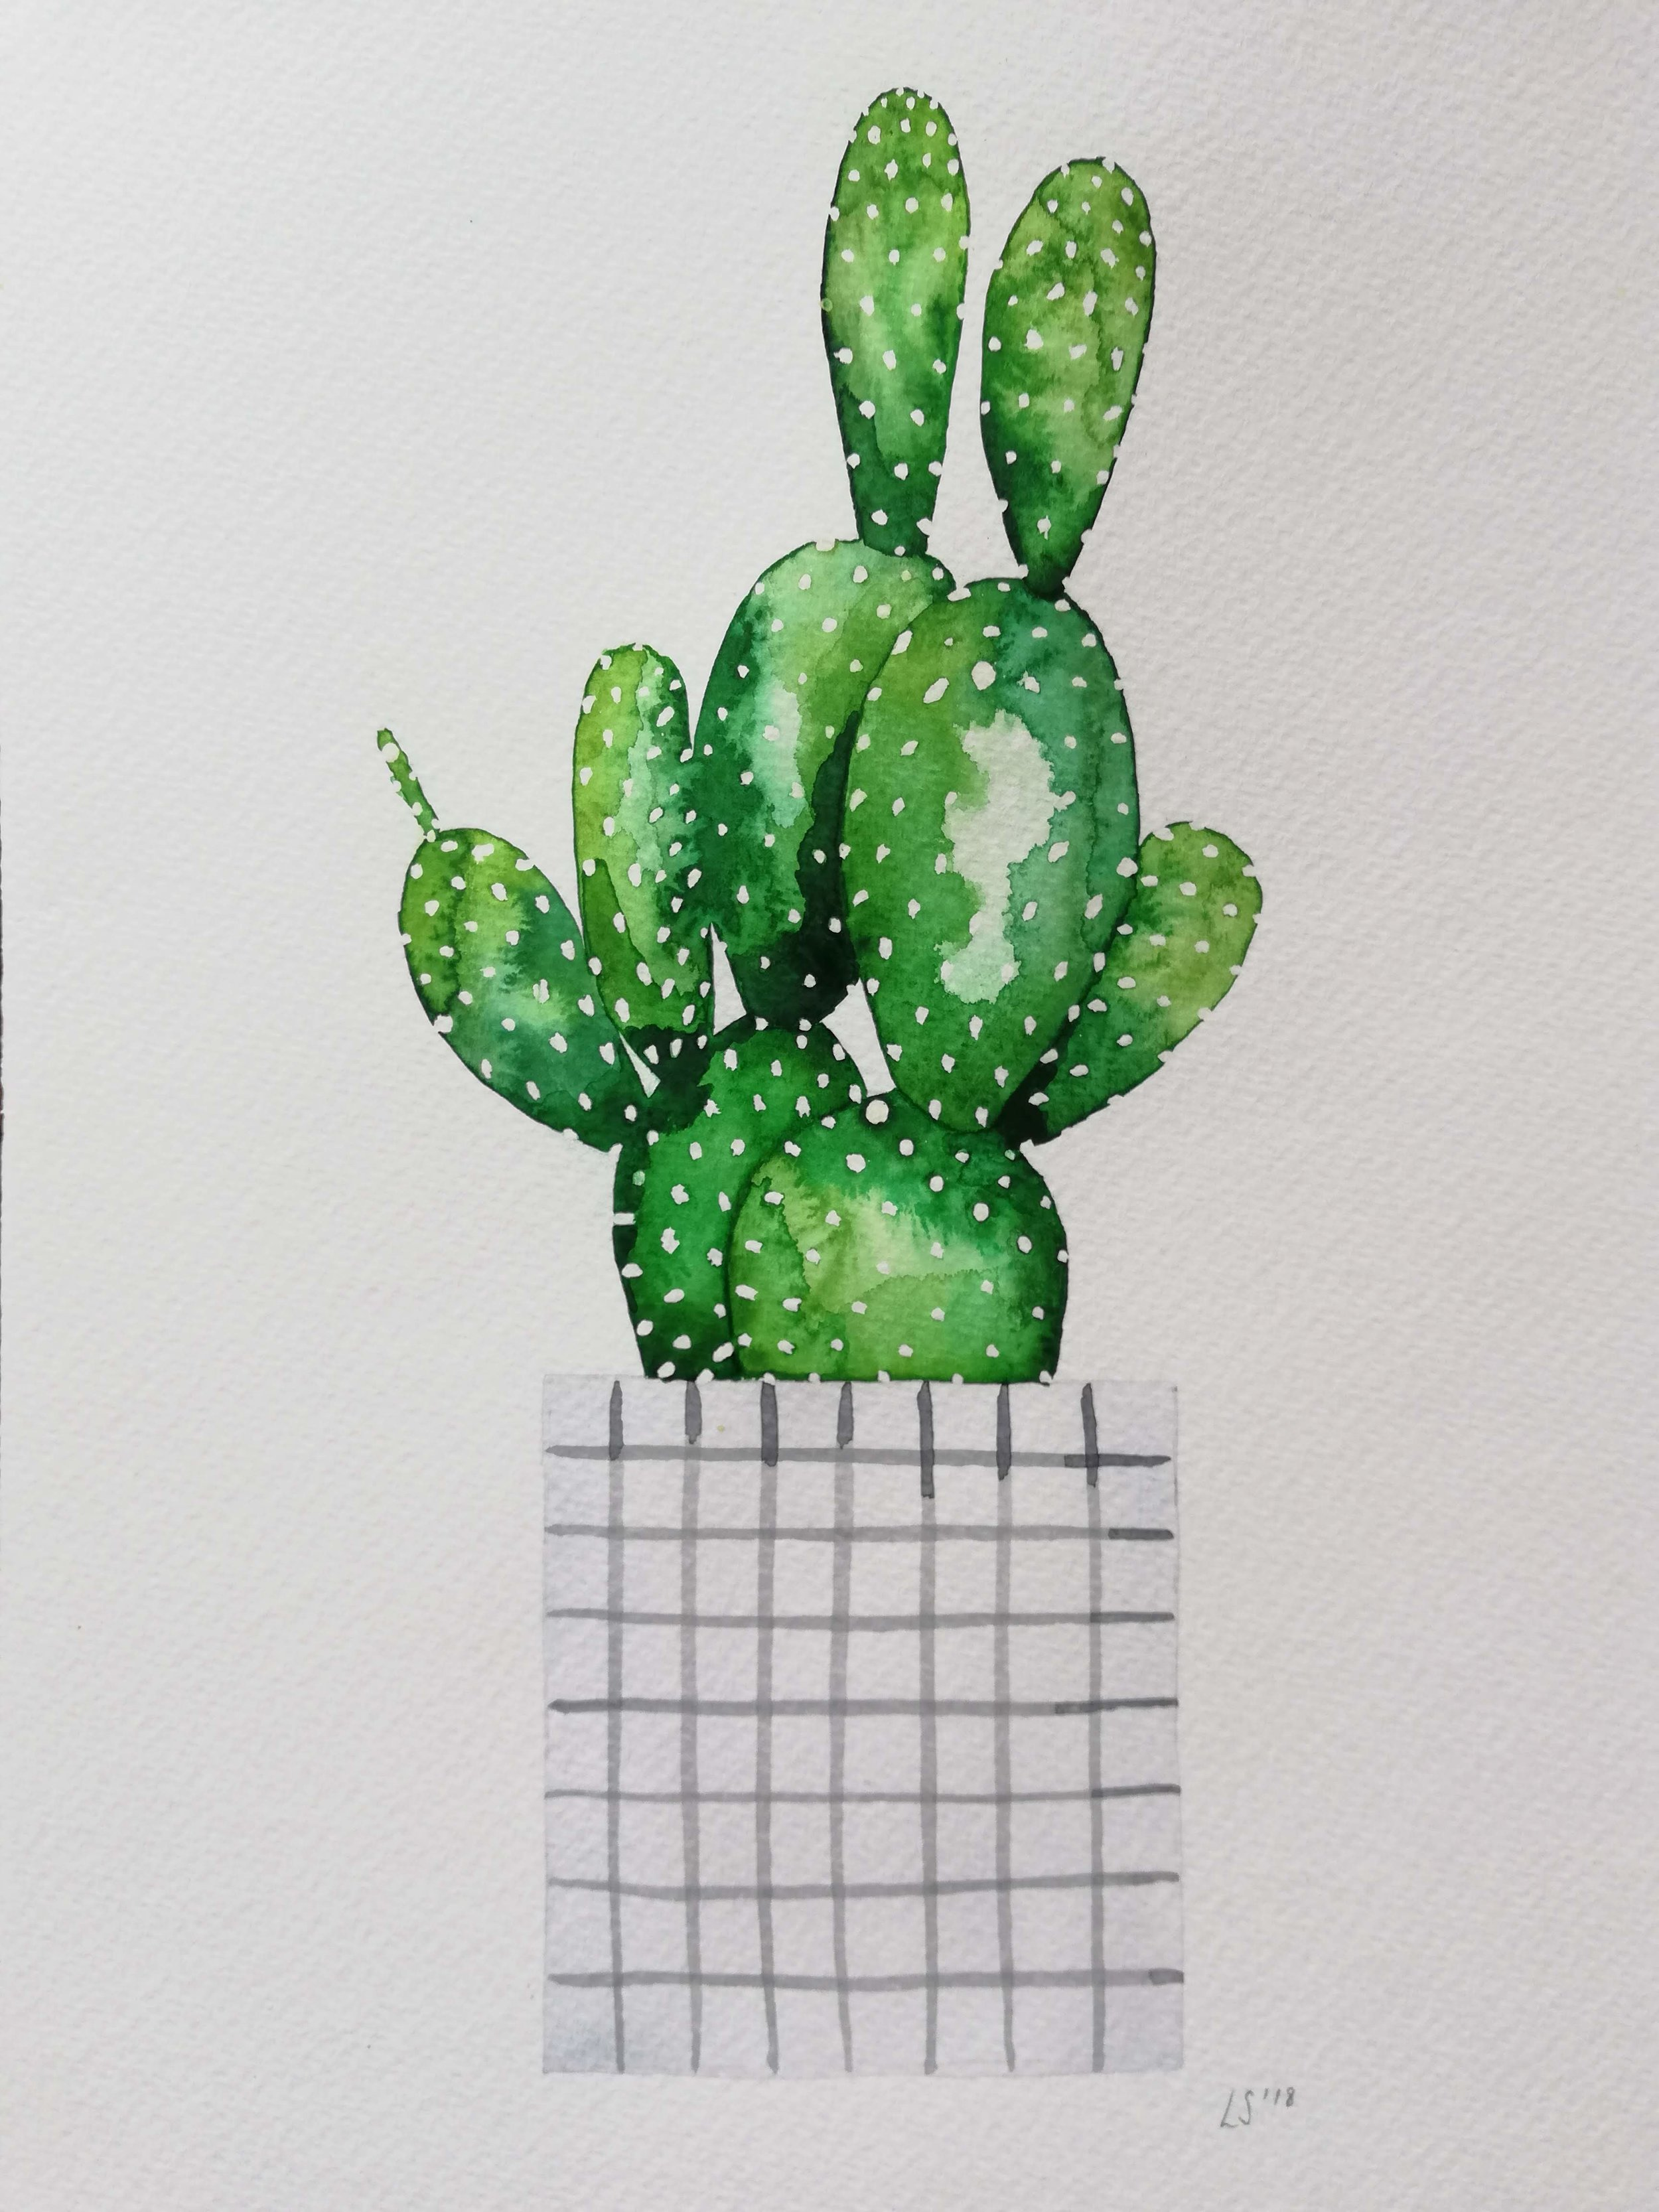 Recent Botanical Inspired Work by Lucy Springall